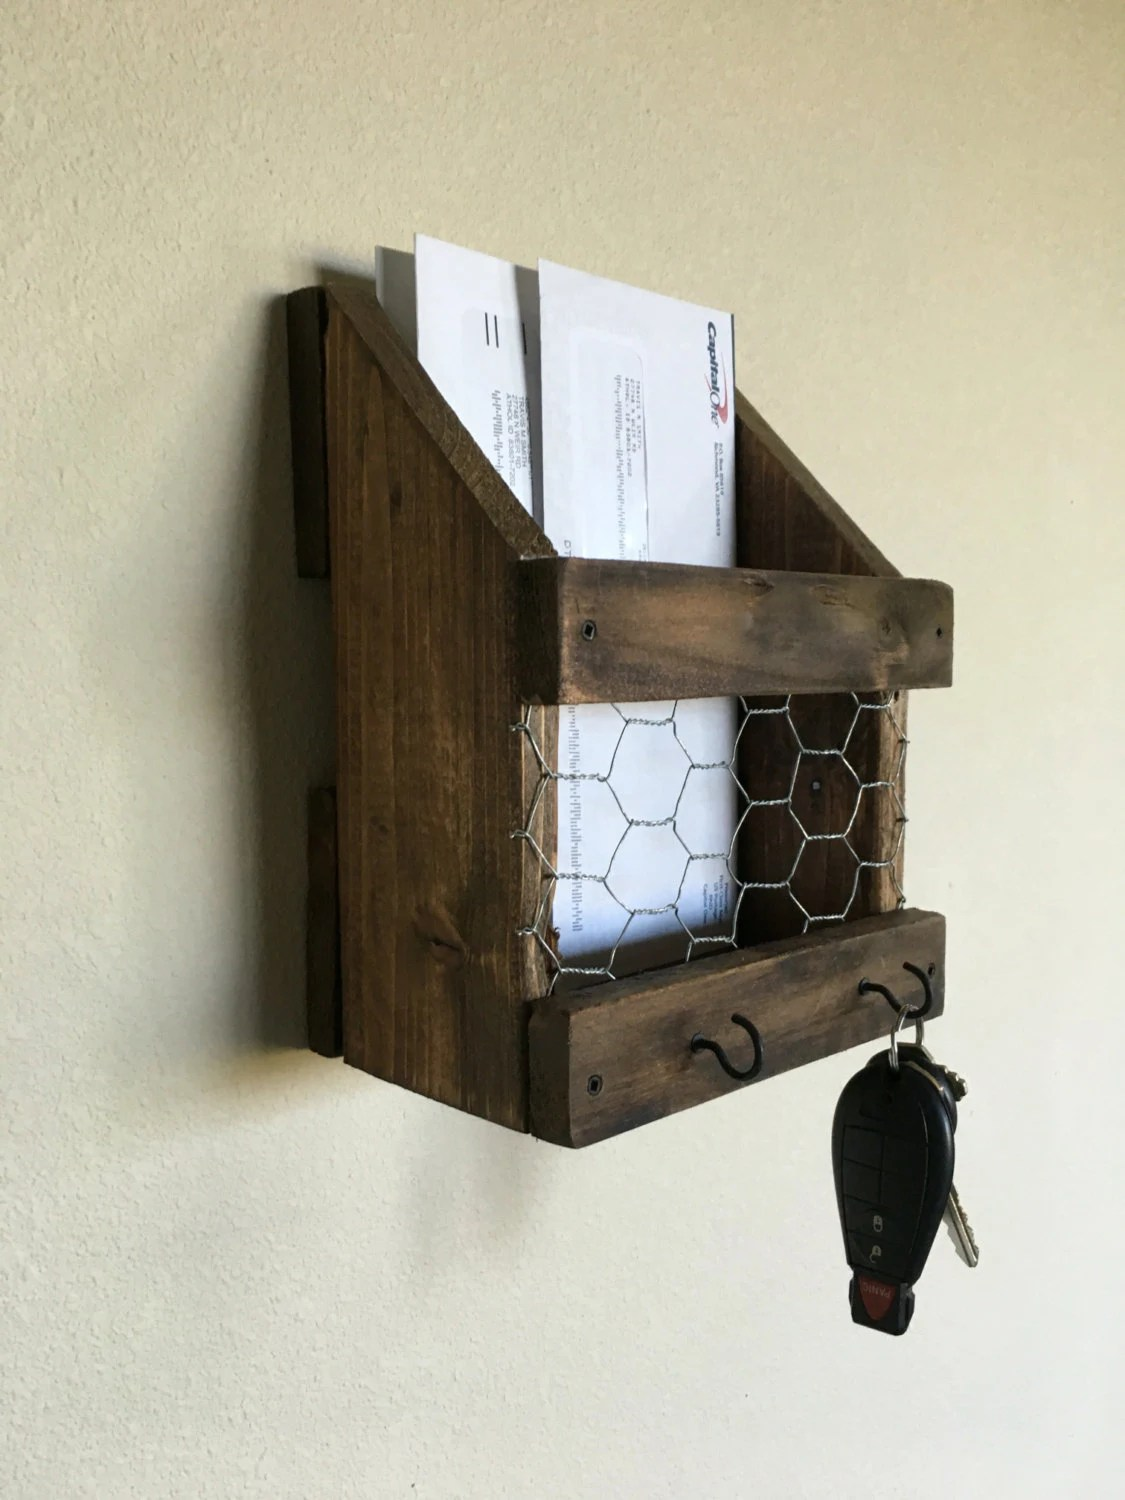 Hanging Mail And Key Organizer Mail And Key Holder Rustic Mail And Key Holder Farmhouse